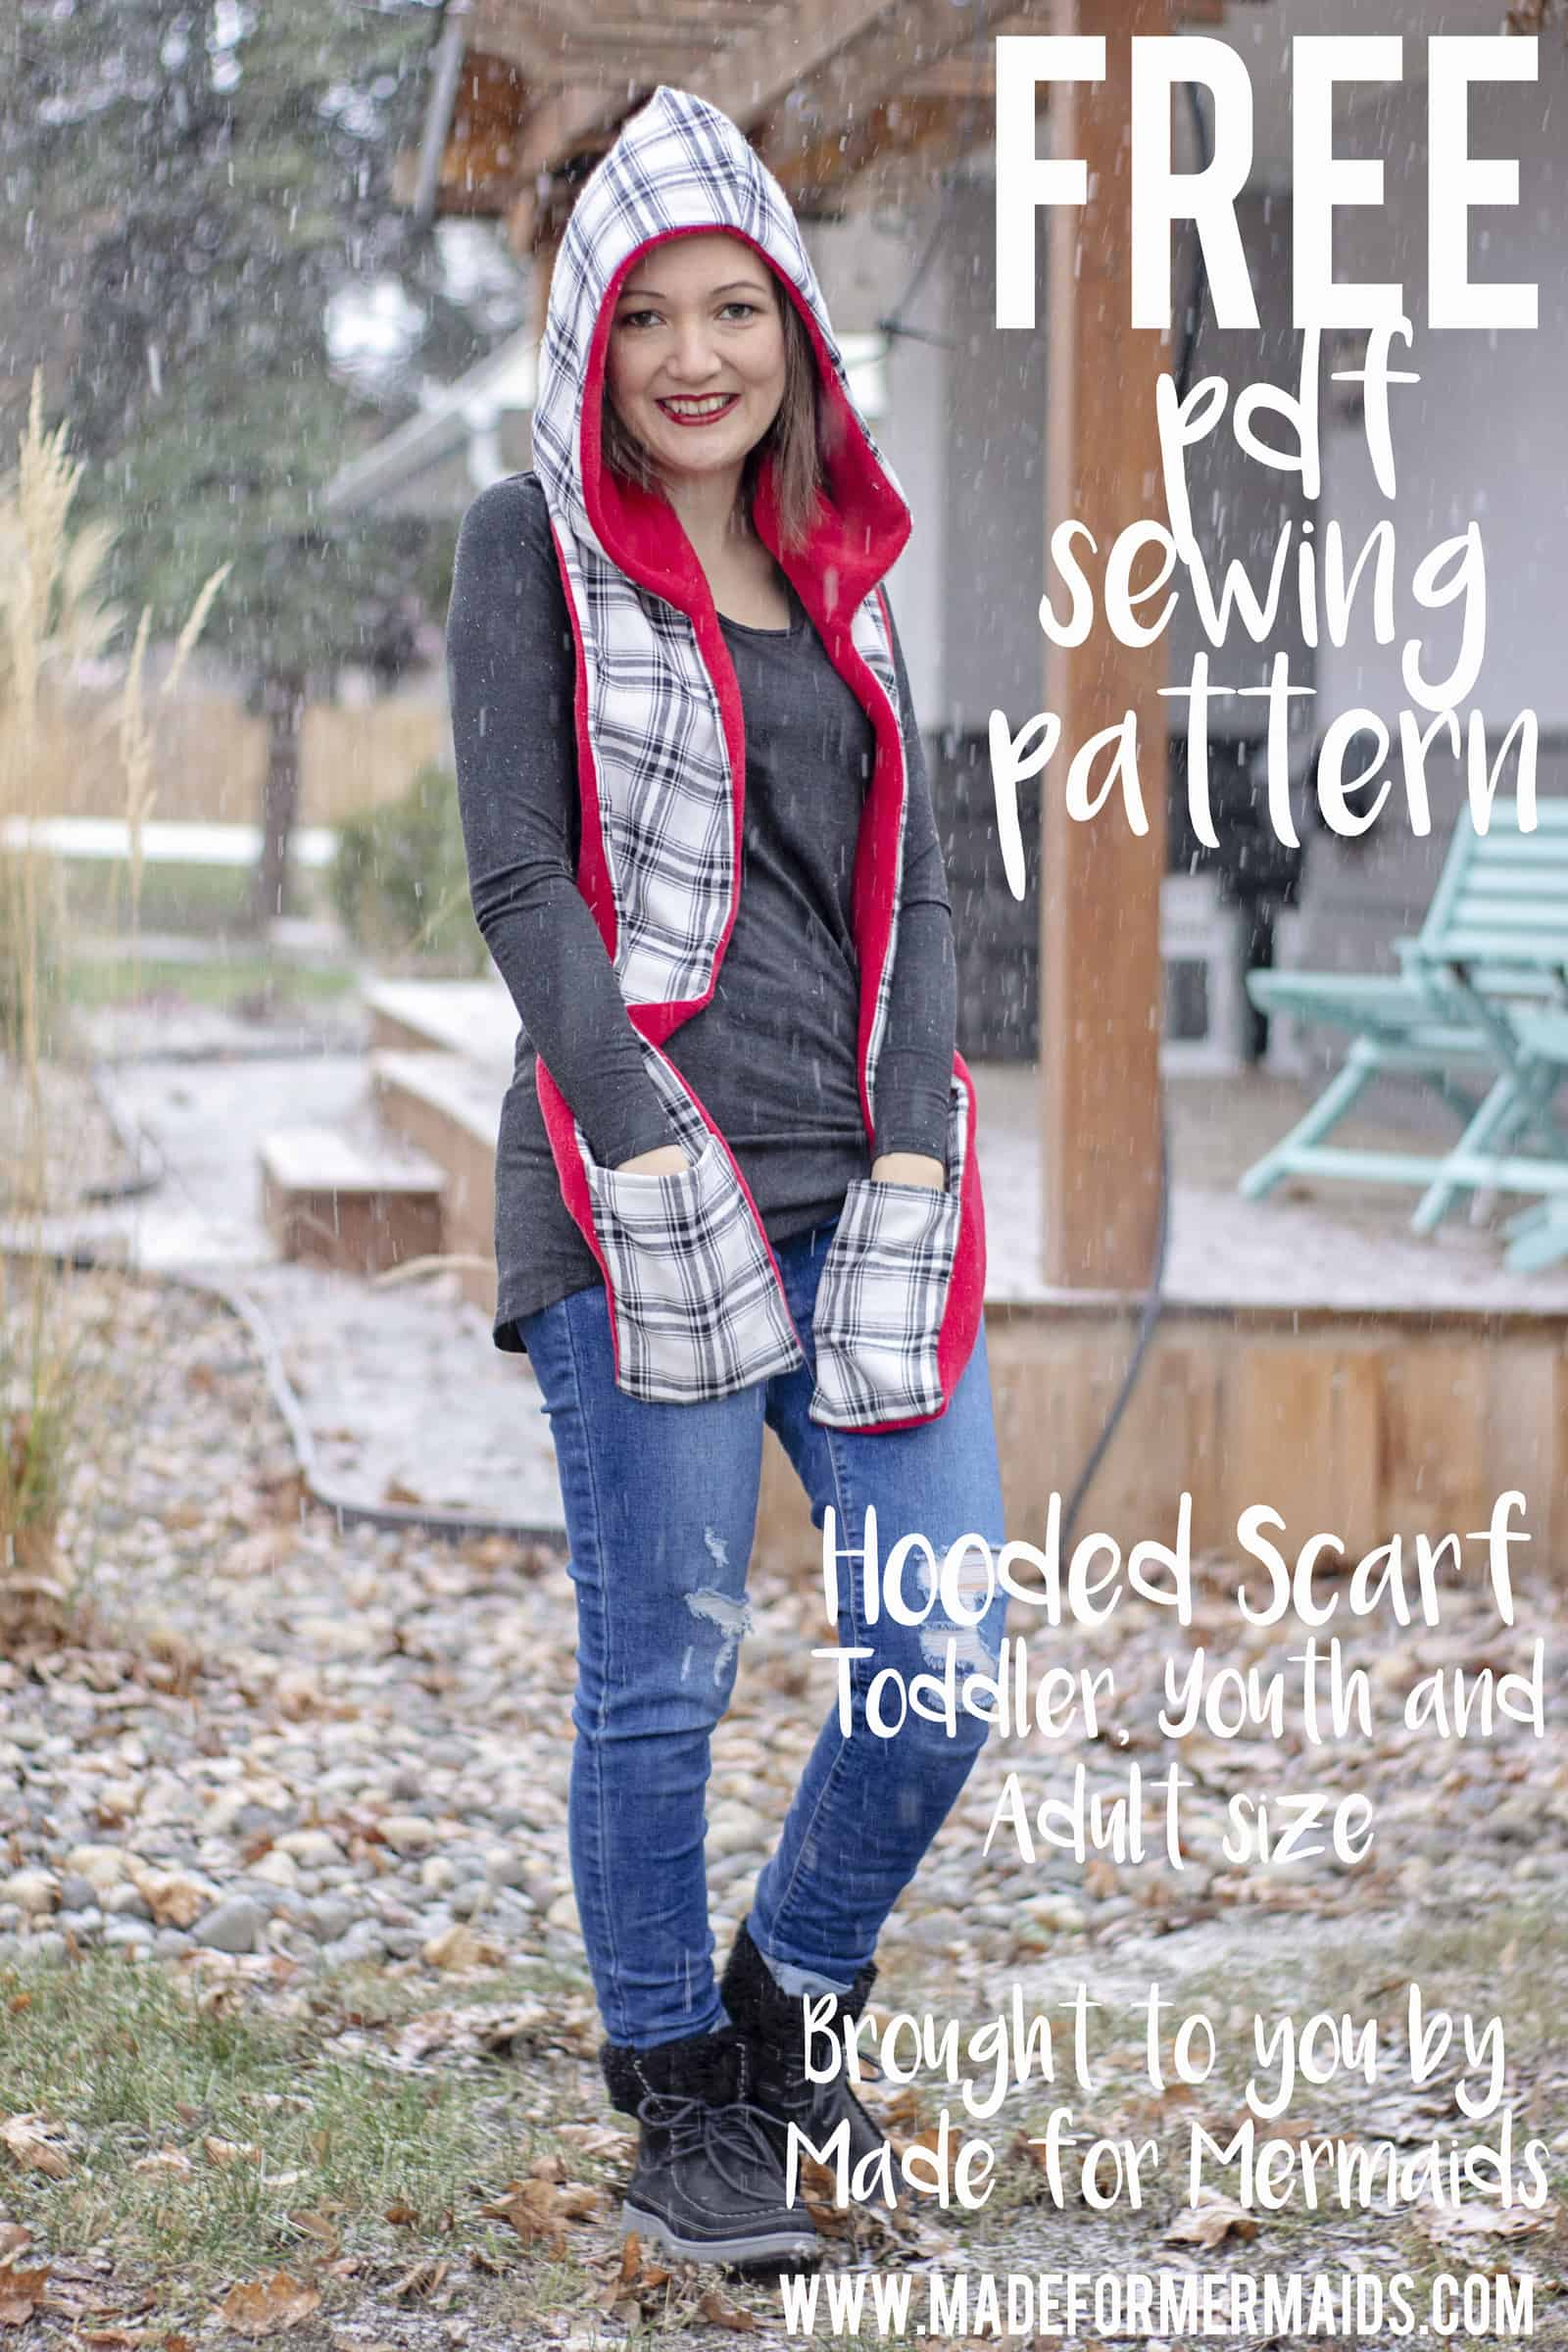 Hooded Scarf Sewing Pattern Free Hooded Scarf In Toddler